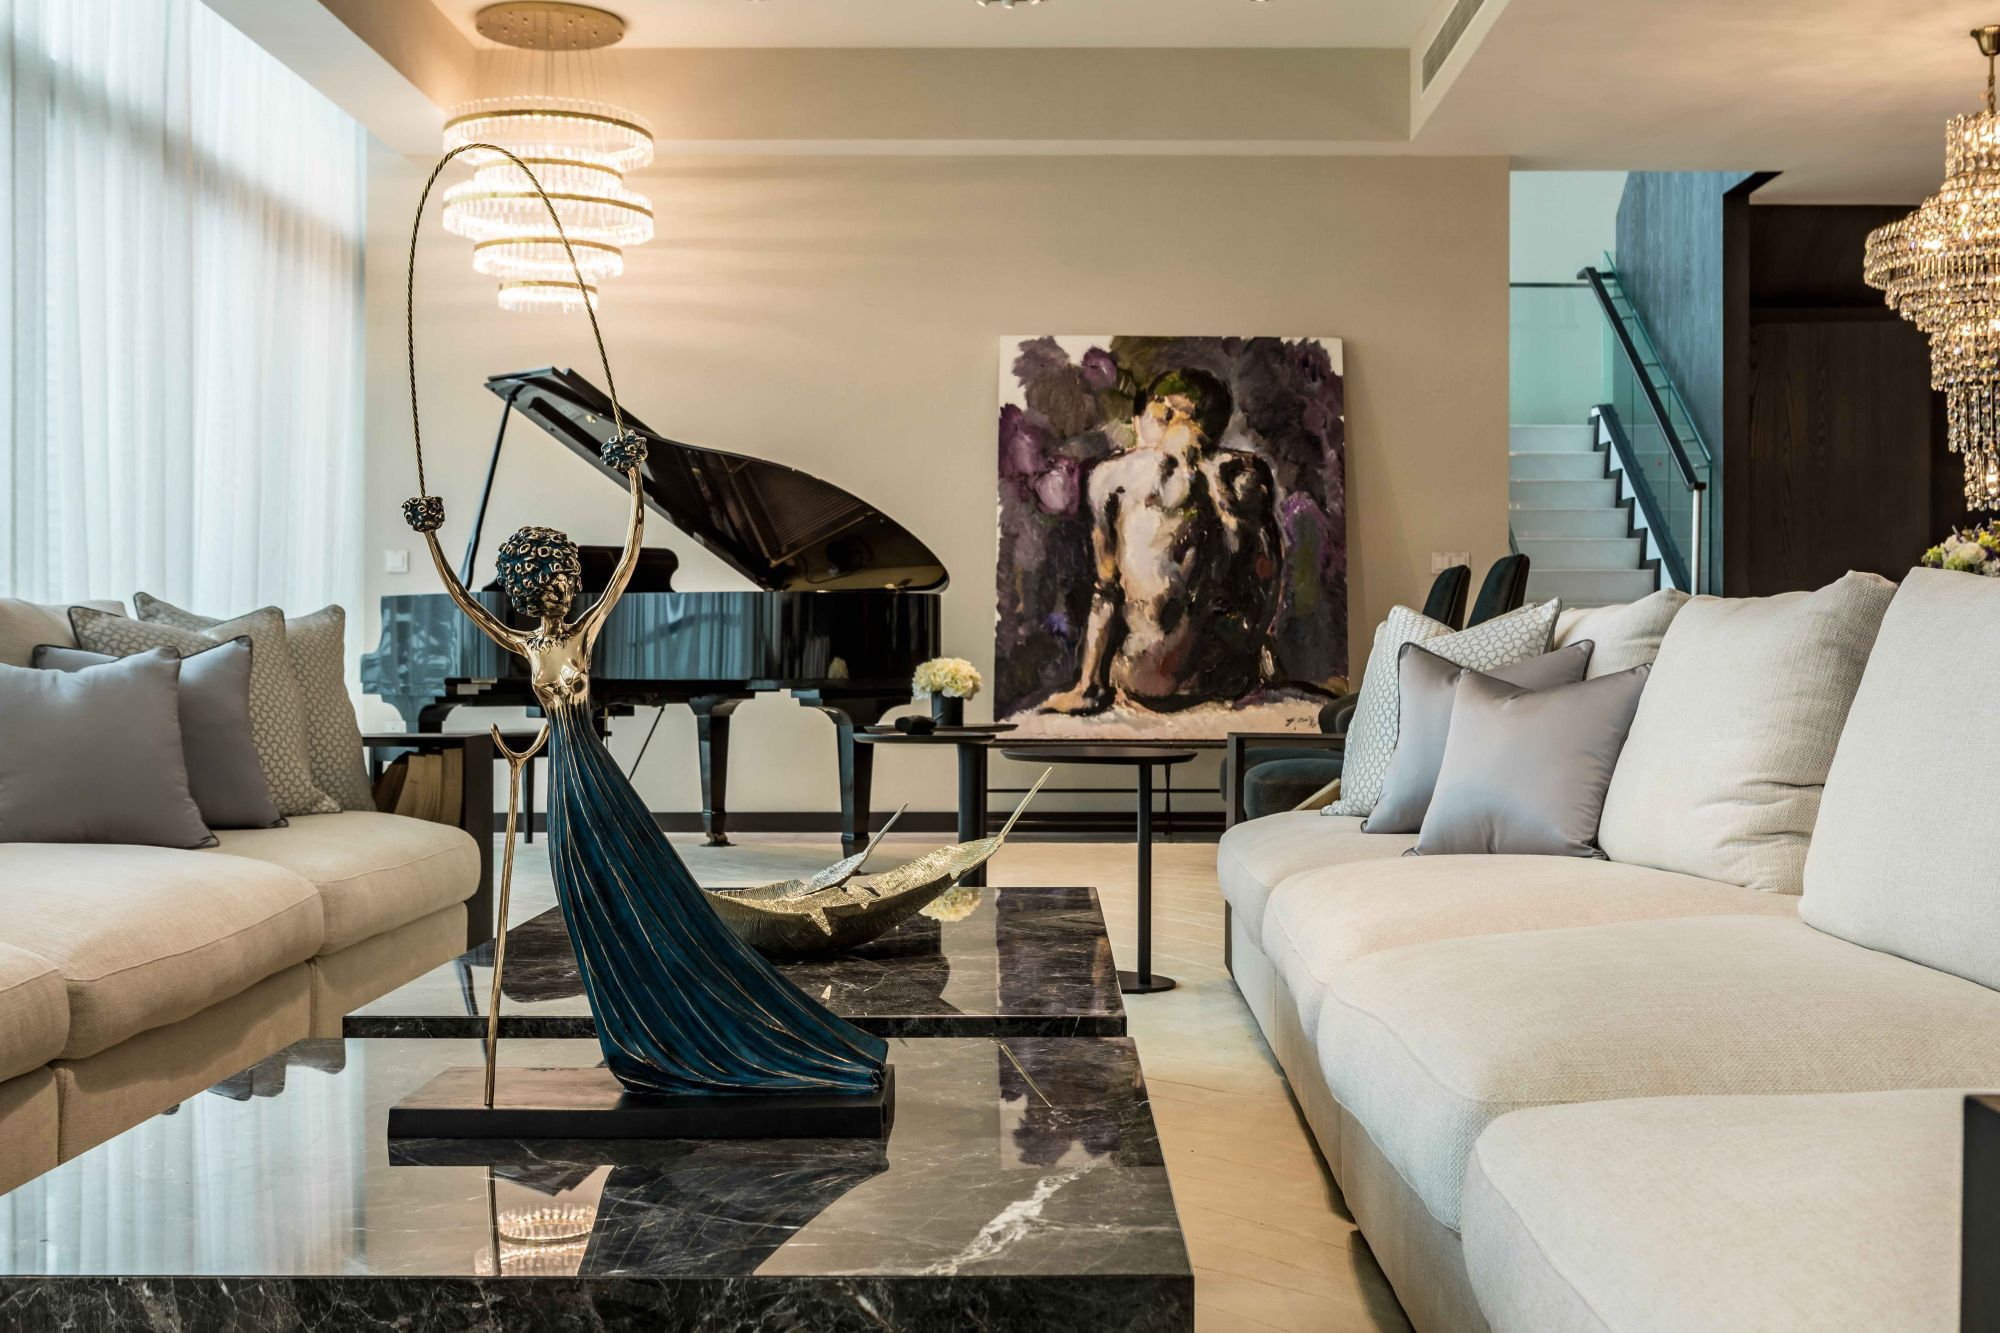 Salvador Dali's Alice In Wonderland sculpture, displayed on a coffee table in a project designed by Edmund Ng Architects